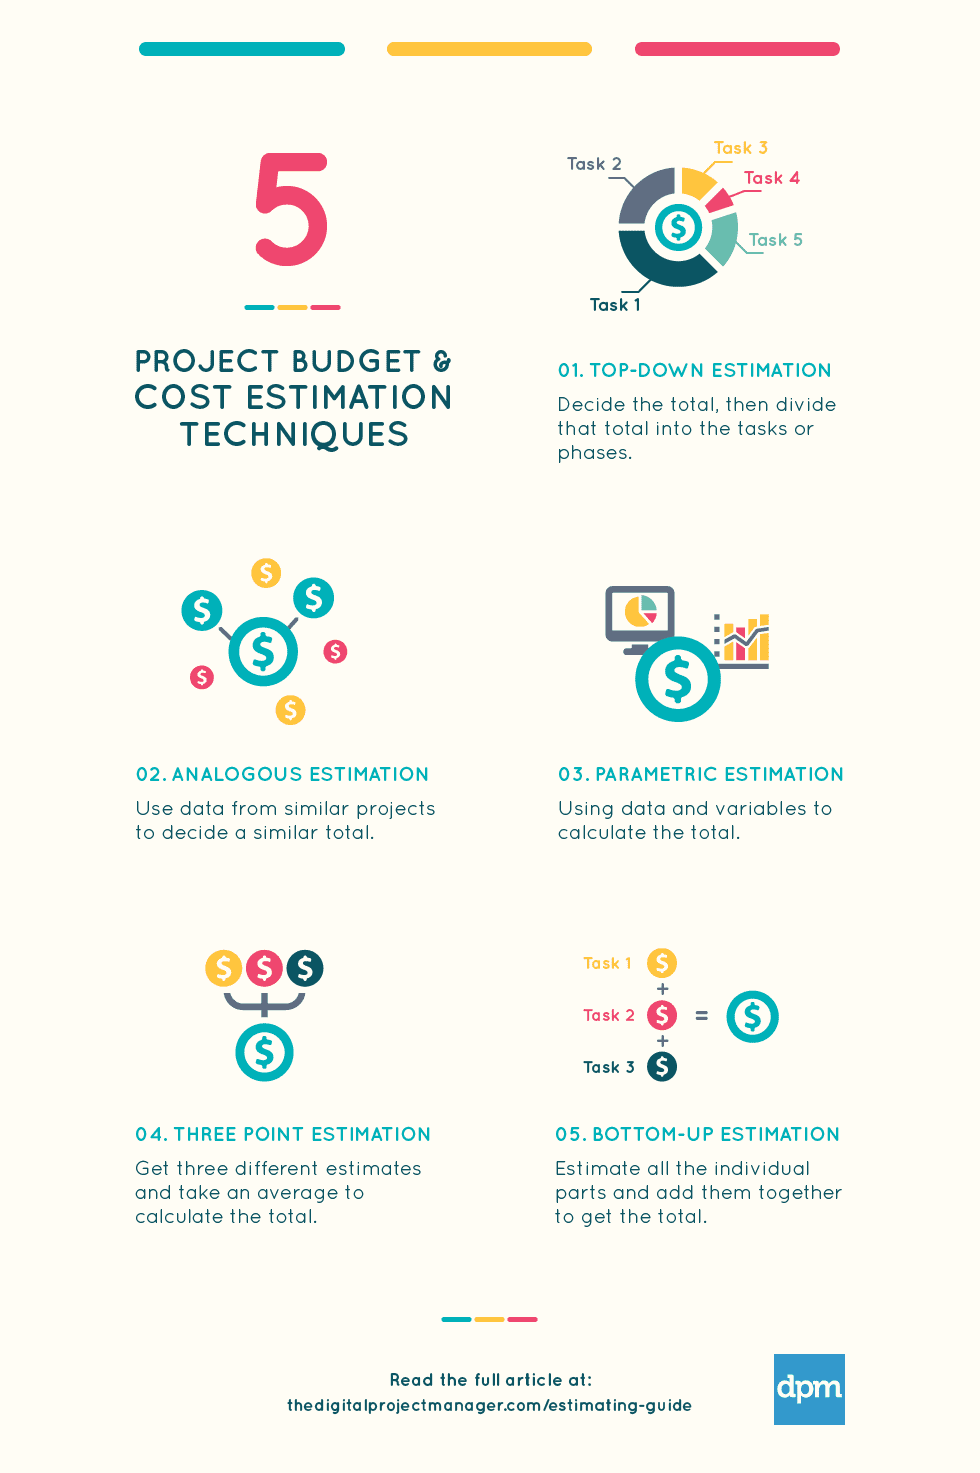 Project Budget - Cost estimation techniques infographic